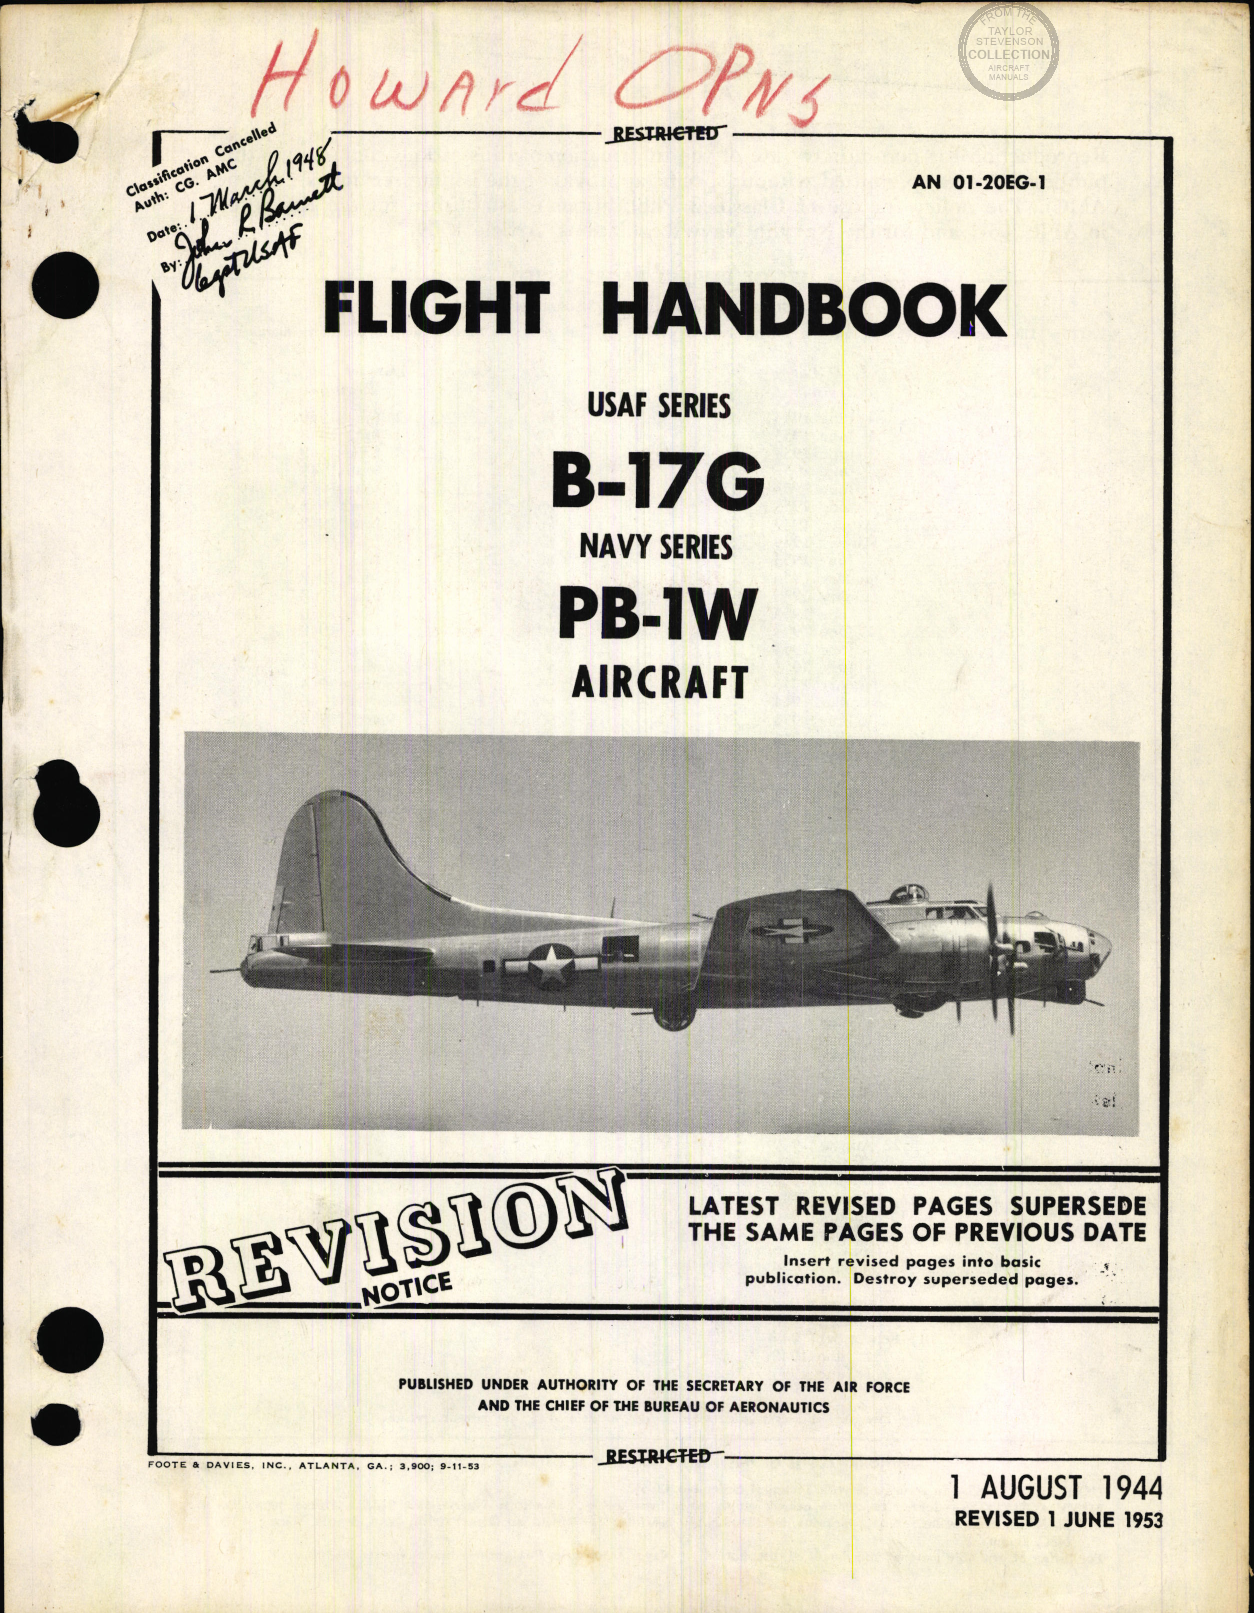 Sample page 1 from AirCorps Library document: Flight Handbook for B-17G, PB-1E Aircraft